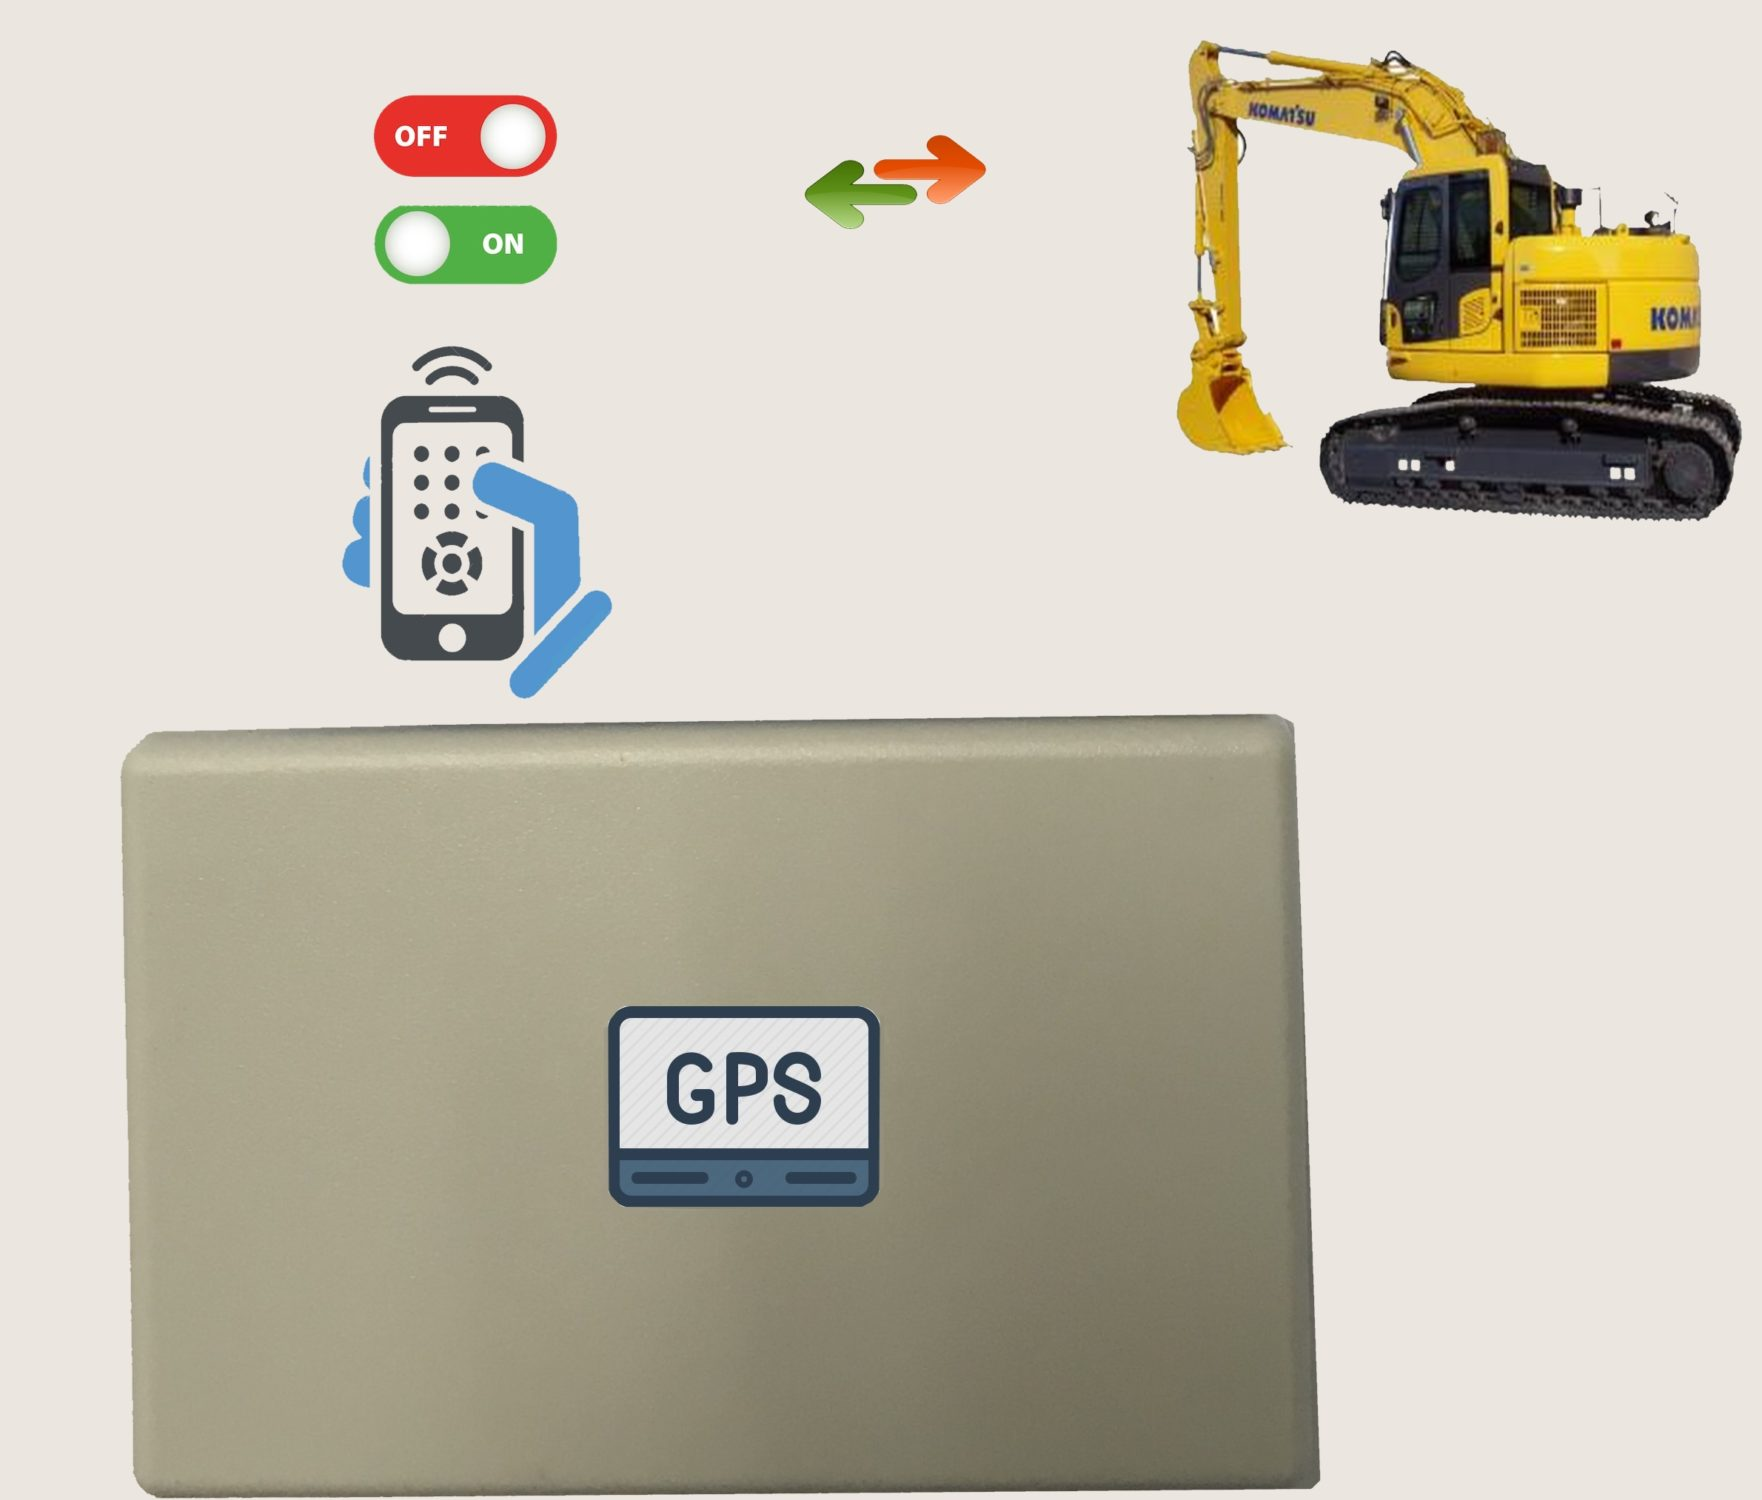 4G GPS Remote Machine Disable,Remote Switch-Off Relay,remote switch off relay that can switch off or switch back on the power to the machine